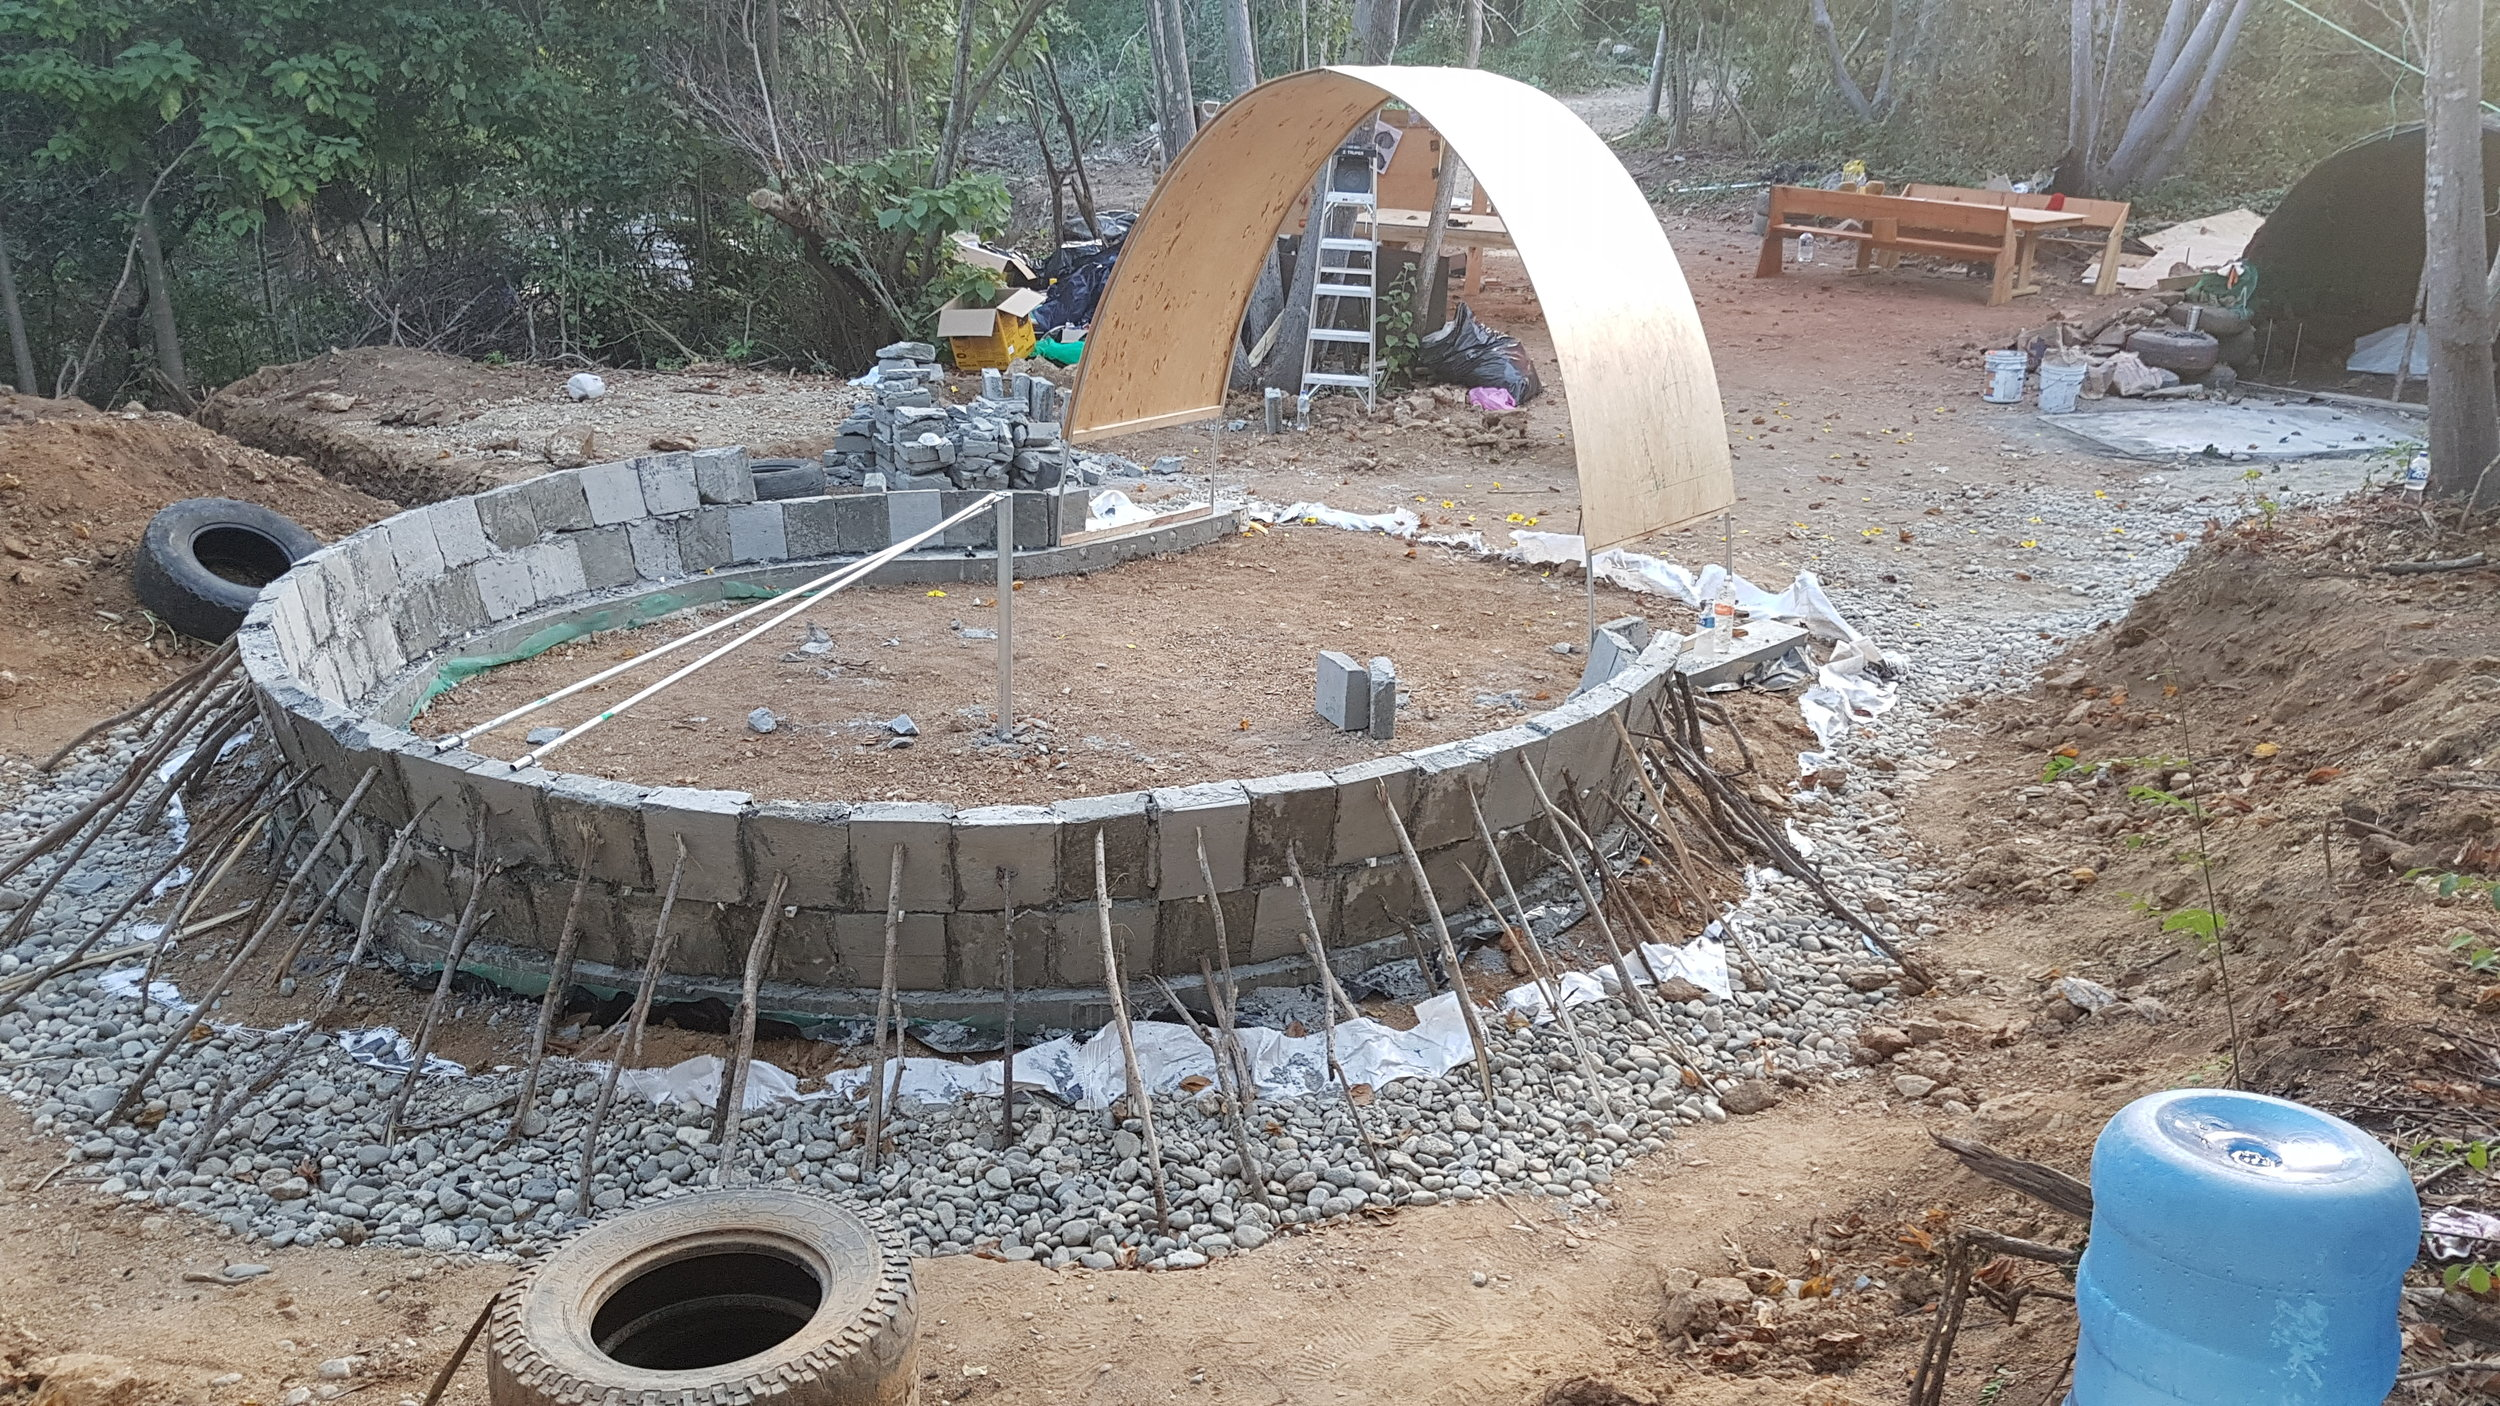 We have 35 people that came now to build a AIRCRETE DOME as the first unit of the orphanage!   HELP US to keep going!